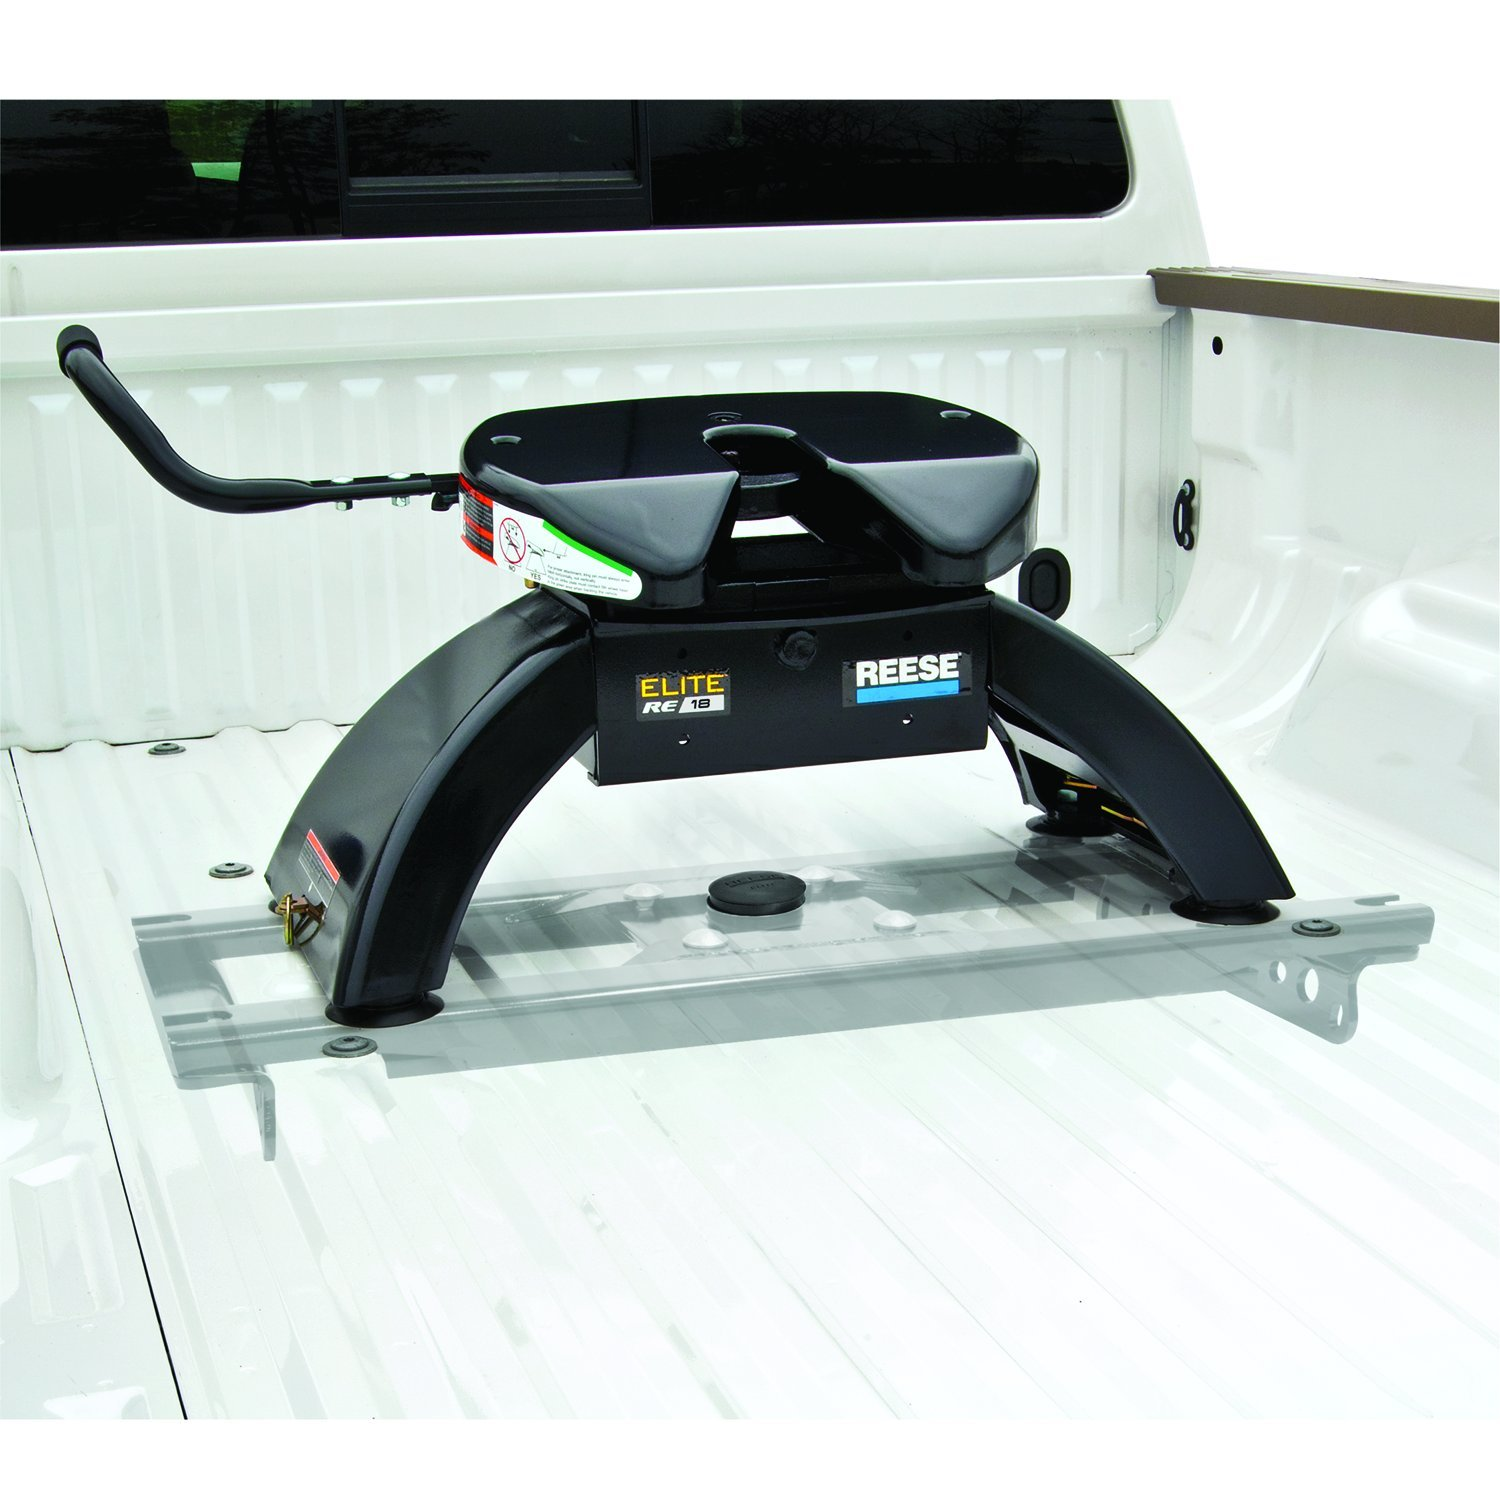 Reese Elite 30142 Fifth Wheel 18000 Lb Load Capacity And 90 Degree Wiring Harness Adapter 5097410 Automotive